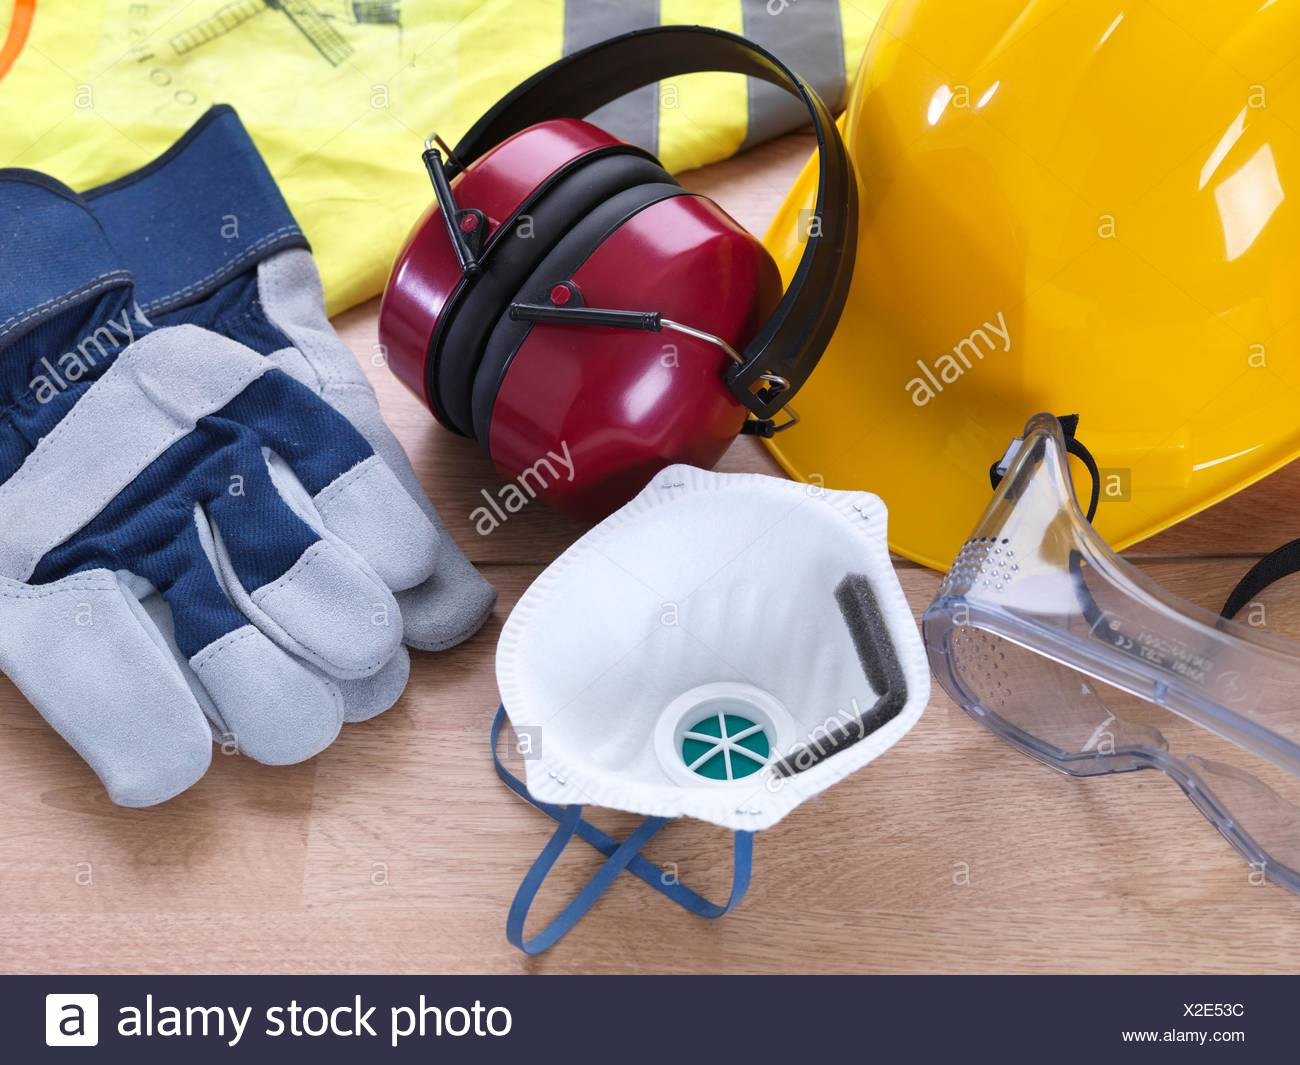 Ppe Face Mask Stock Photos Amp Ppe Face Mask Stock Images